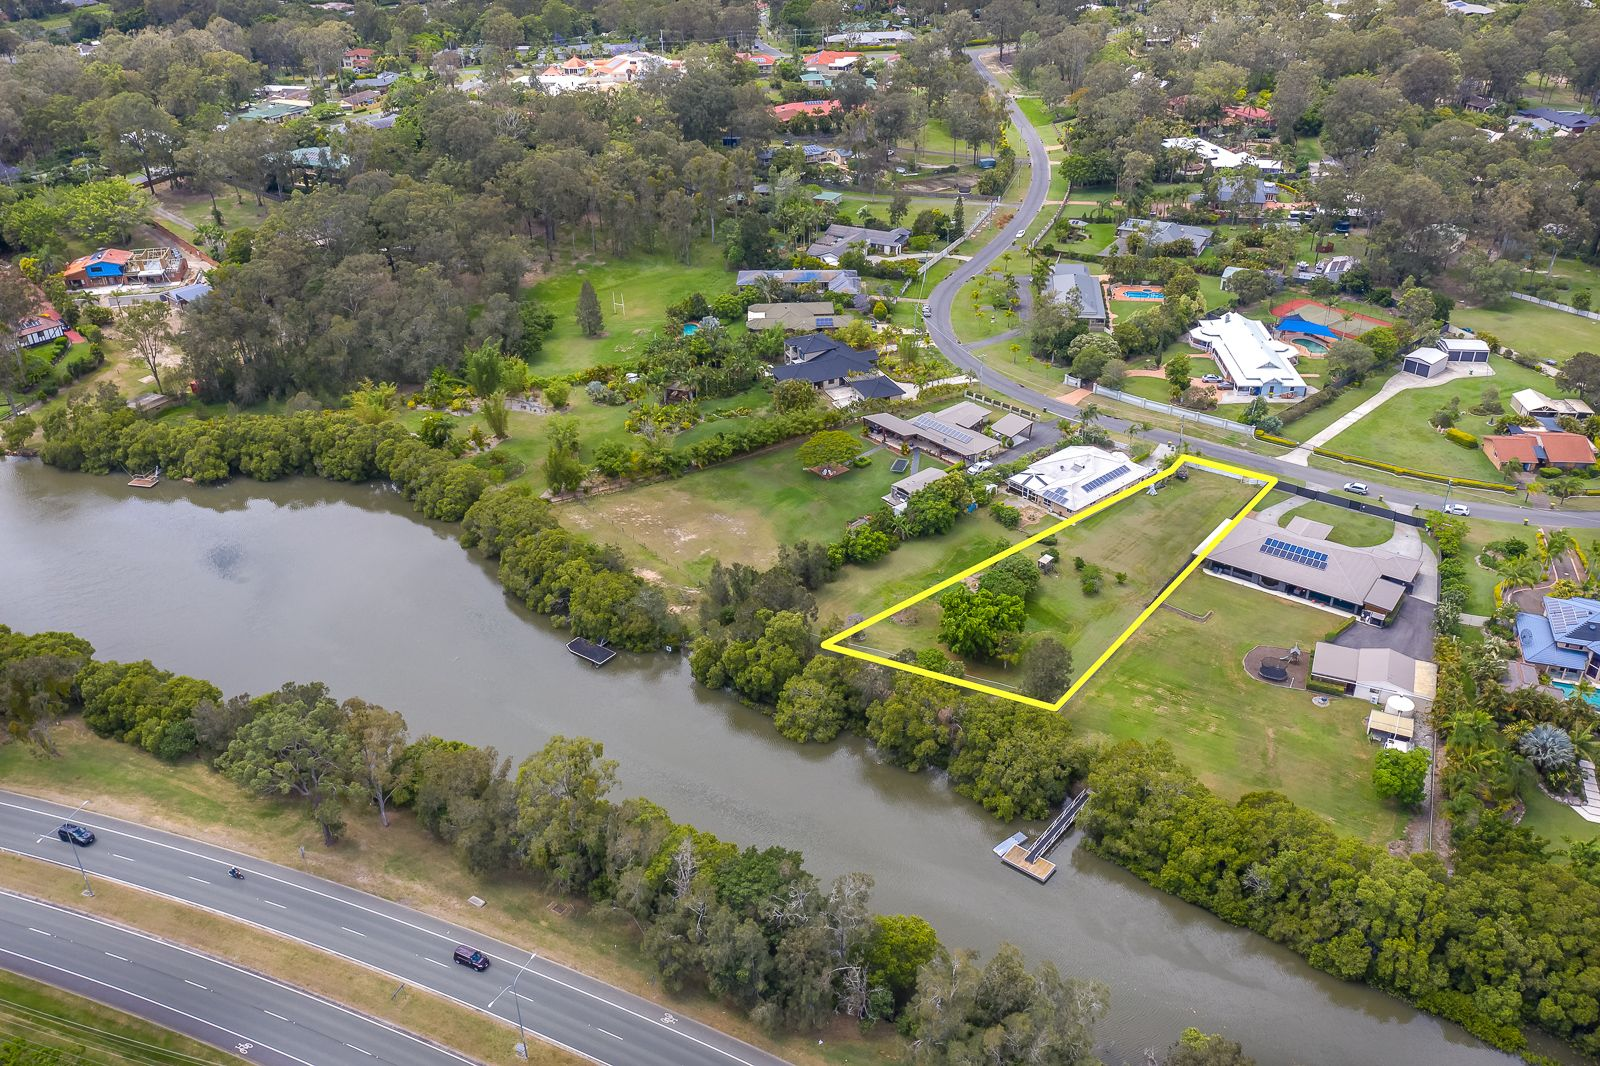 Lot 2 54 Riverdowns Crescent, Helensvale QLD 4212, Image 1